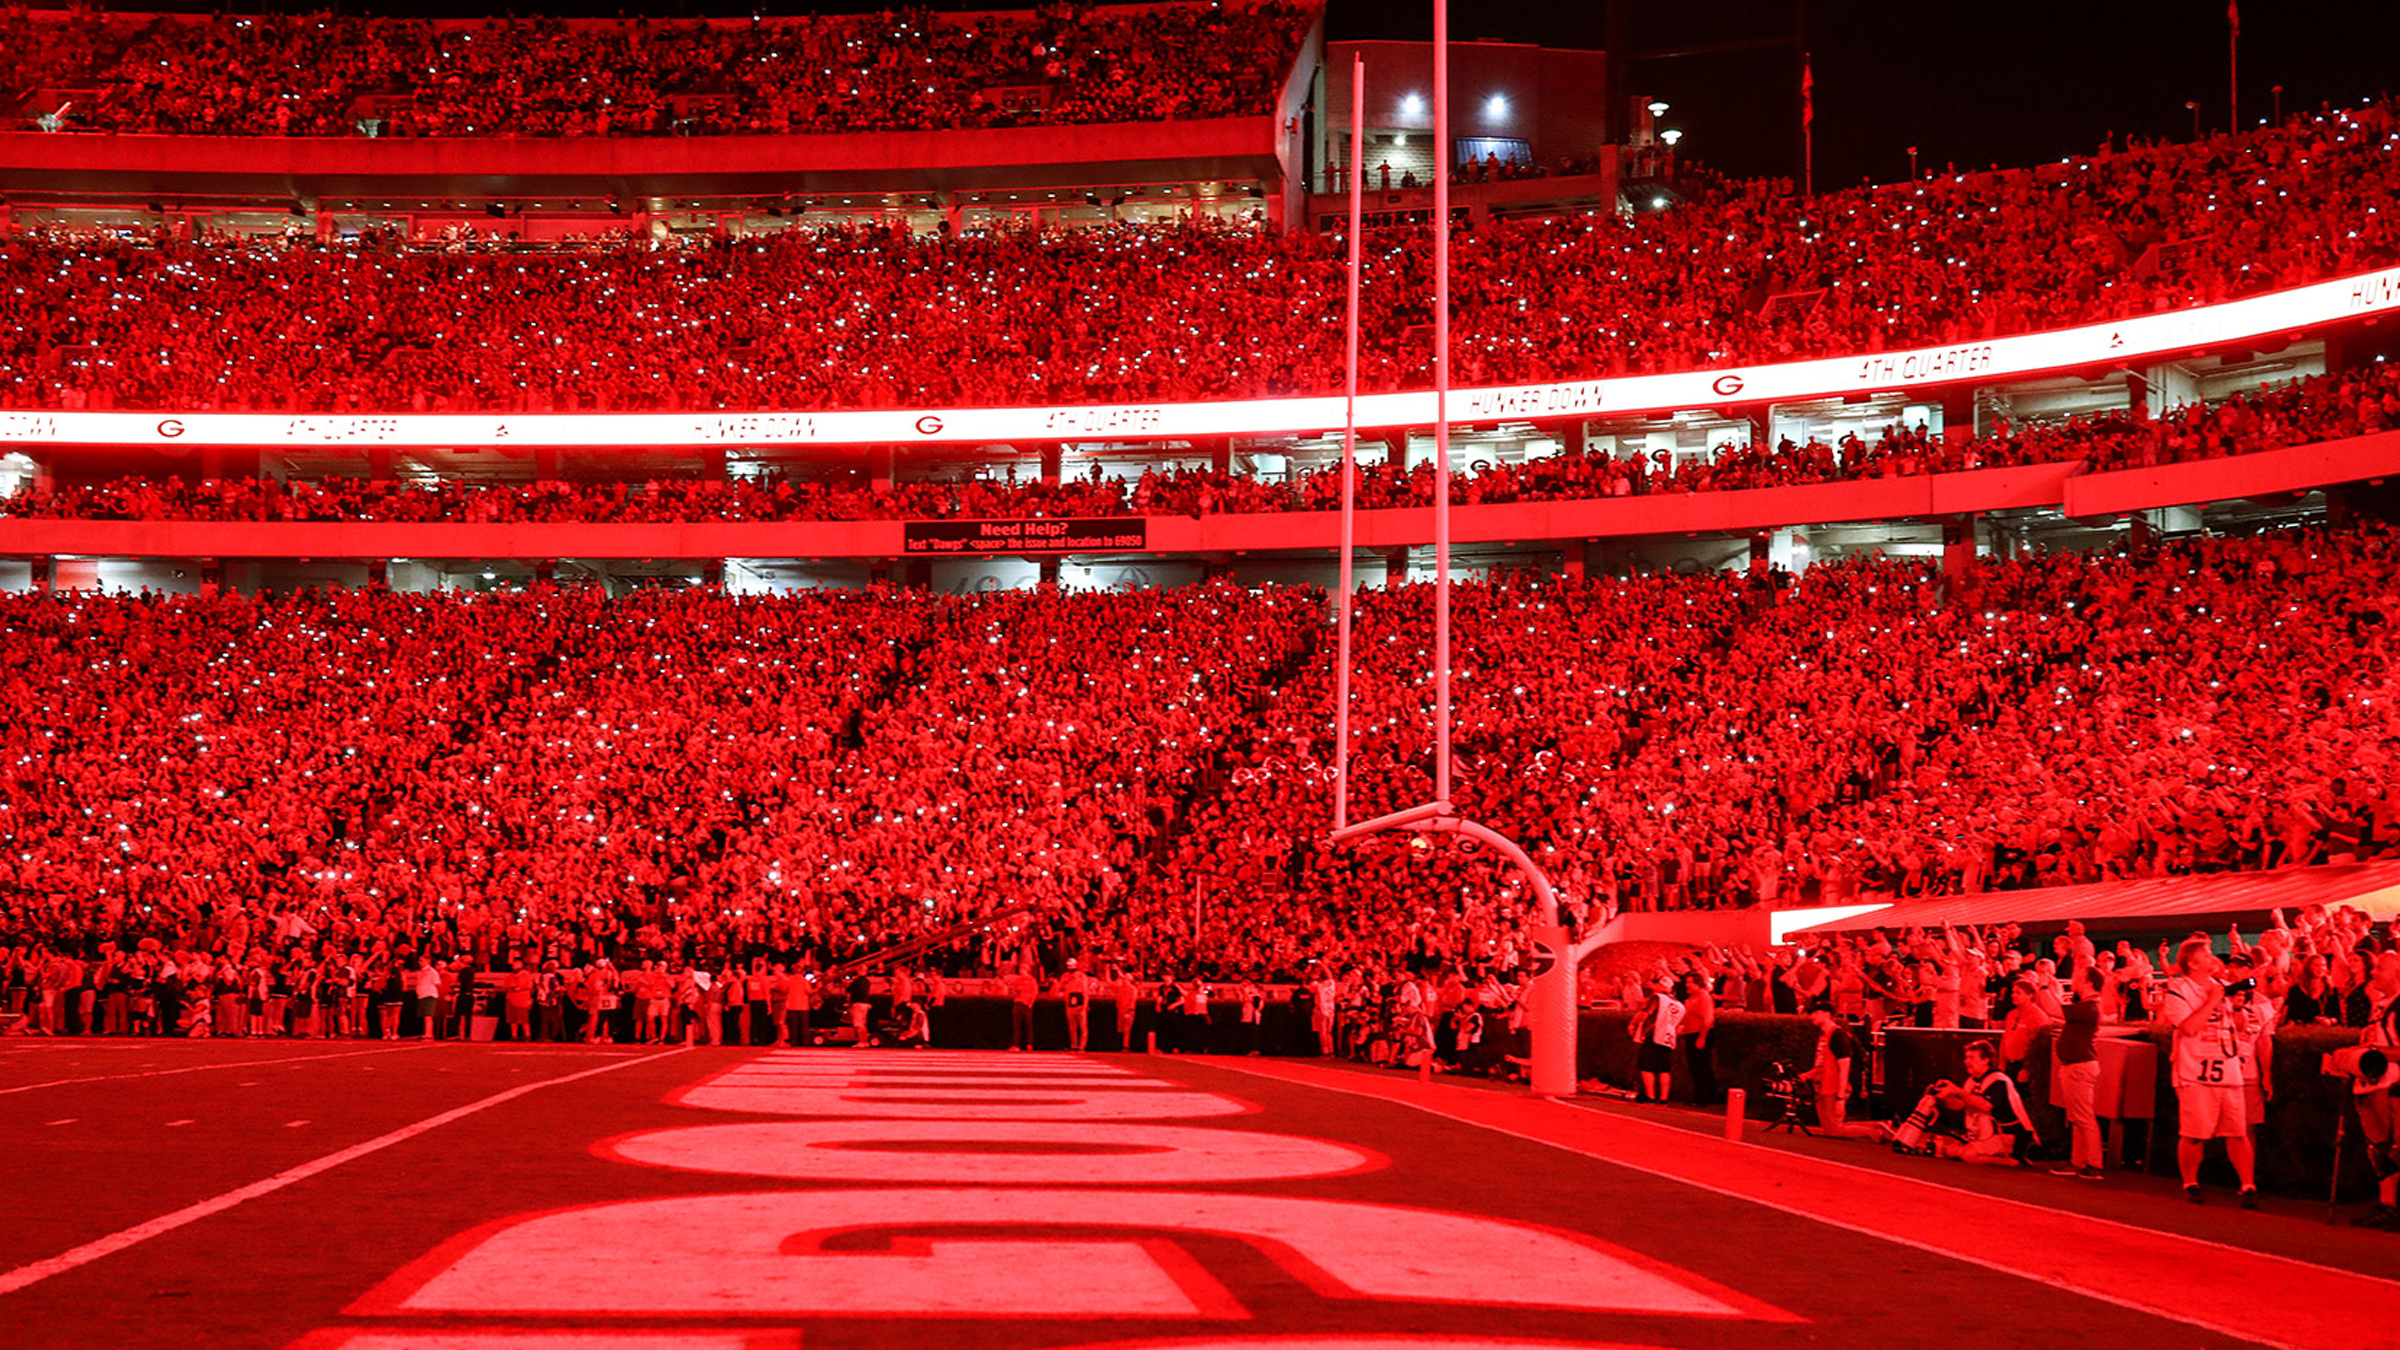 Georgia bulldog stadium with red out lights